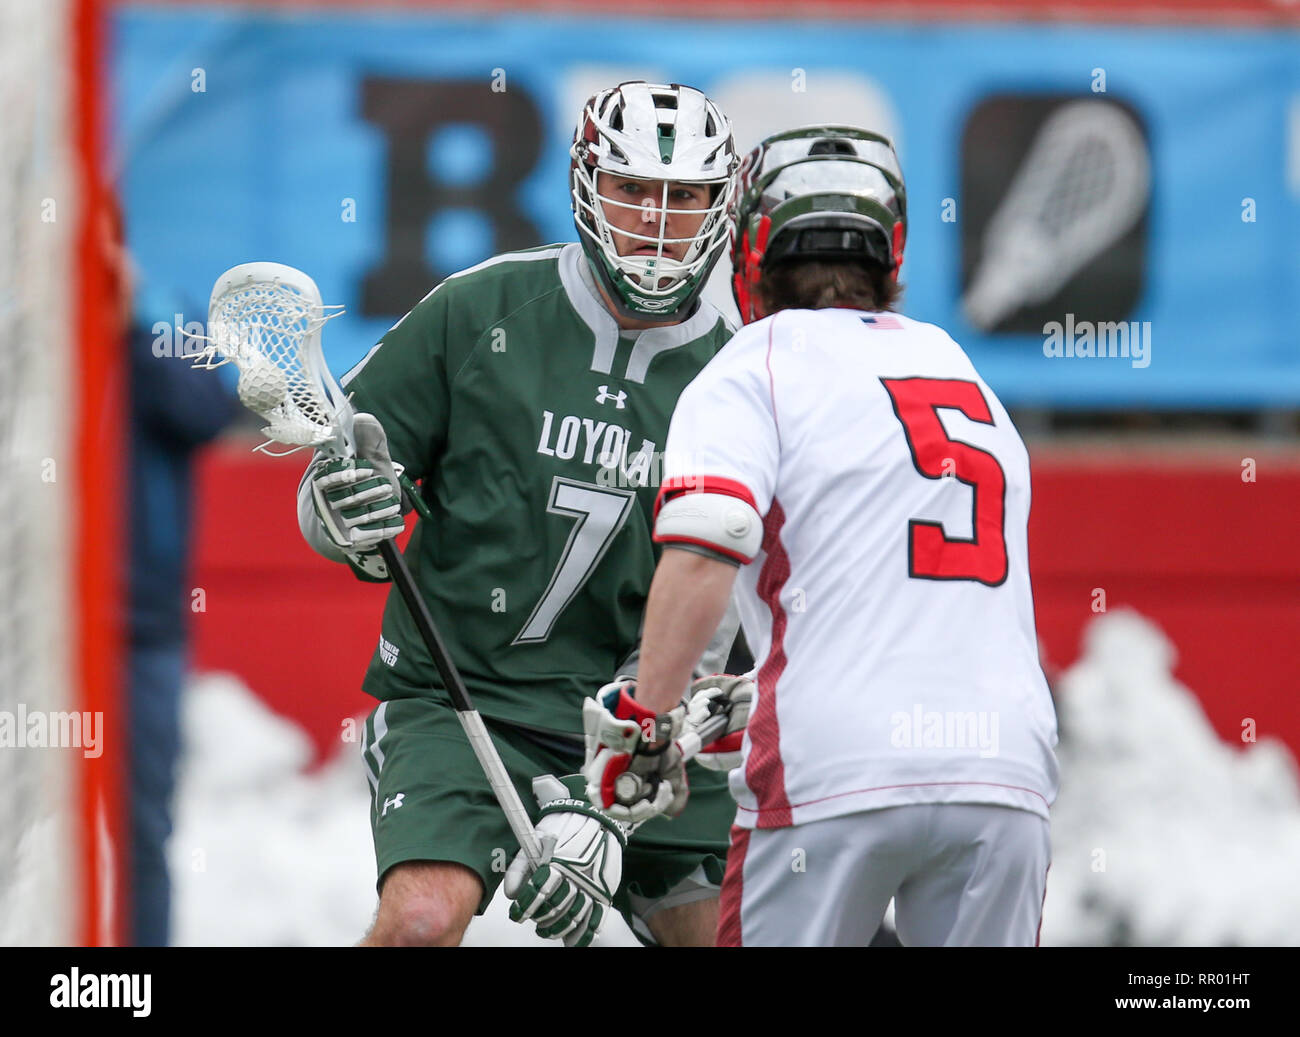 Piscataway, NJ, USA. 23rd Feb, 2019. Loyola Greyhounds attacker Pat Spencer (7) tries to put a move on Rutgers defenseman Kyle Pless (5) during an NCAA men's lacrosse game between Loyola University Maryland and the Rutgers Scarlet Knights at HighPoint.com stadium in Piscataway, NJ. Mike Langish/Cal Sport Media. Credit: csm/Alamy Live News - Stock Image